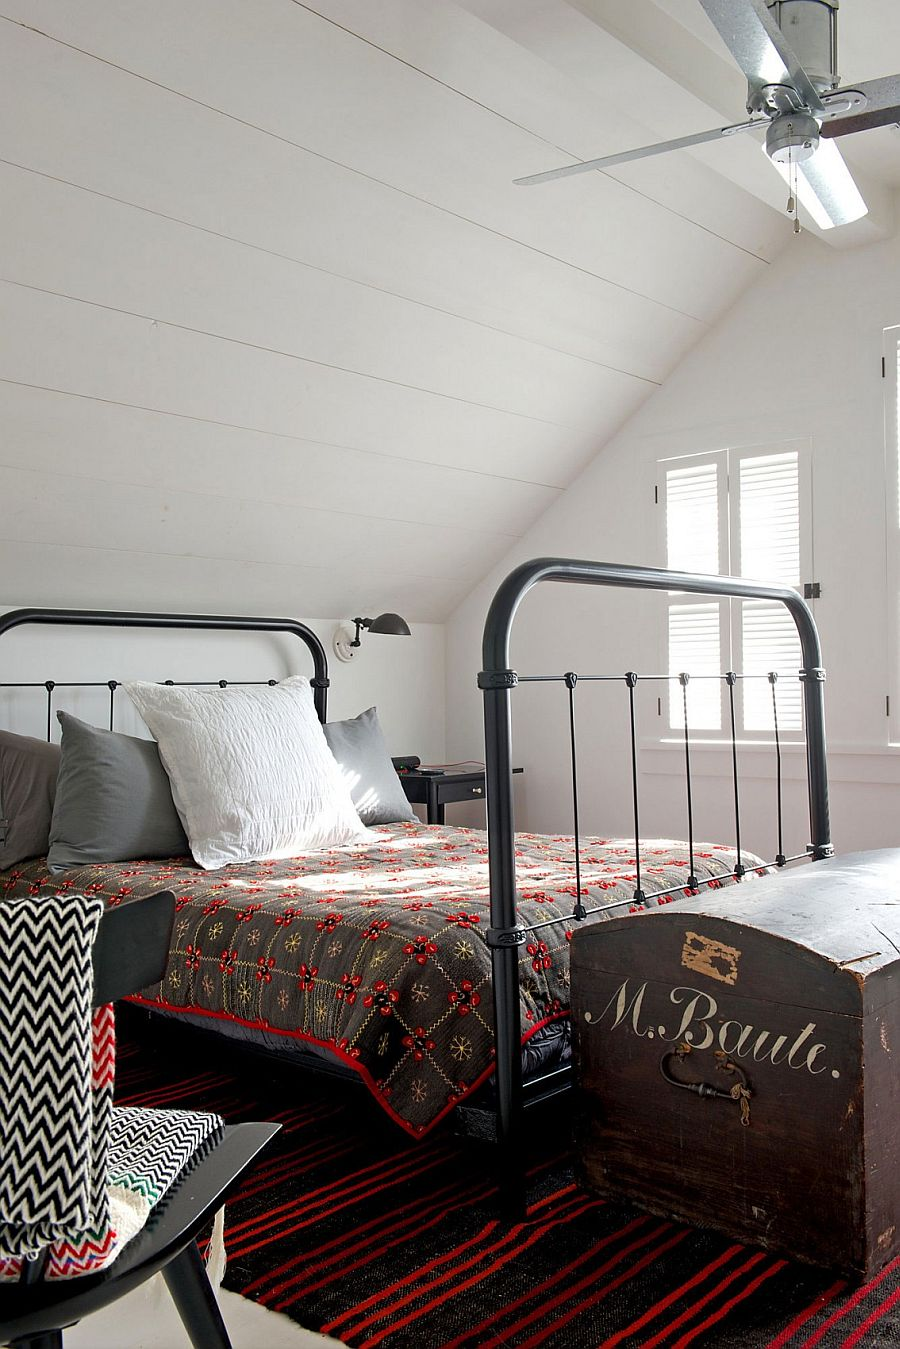 Vintage bedroom design with an iron frame bed